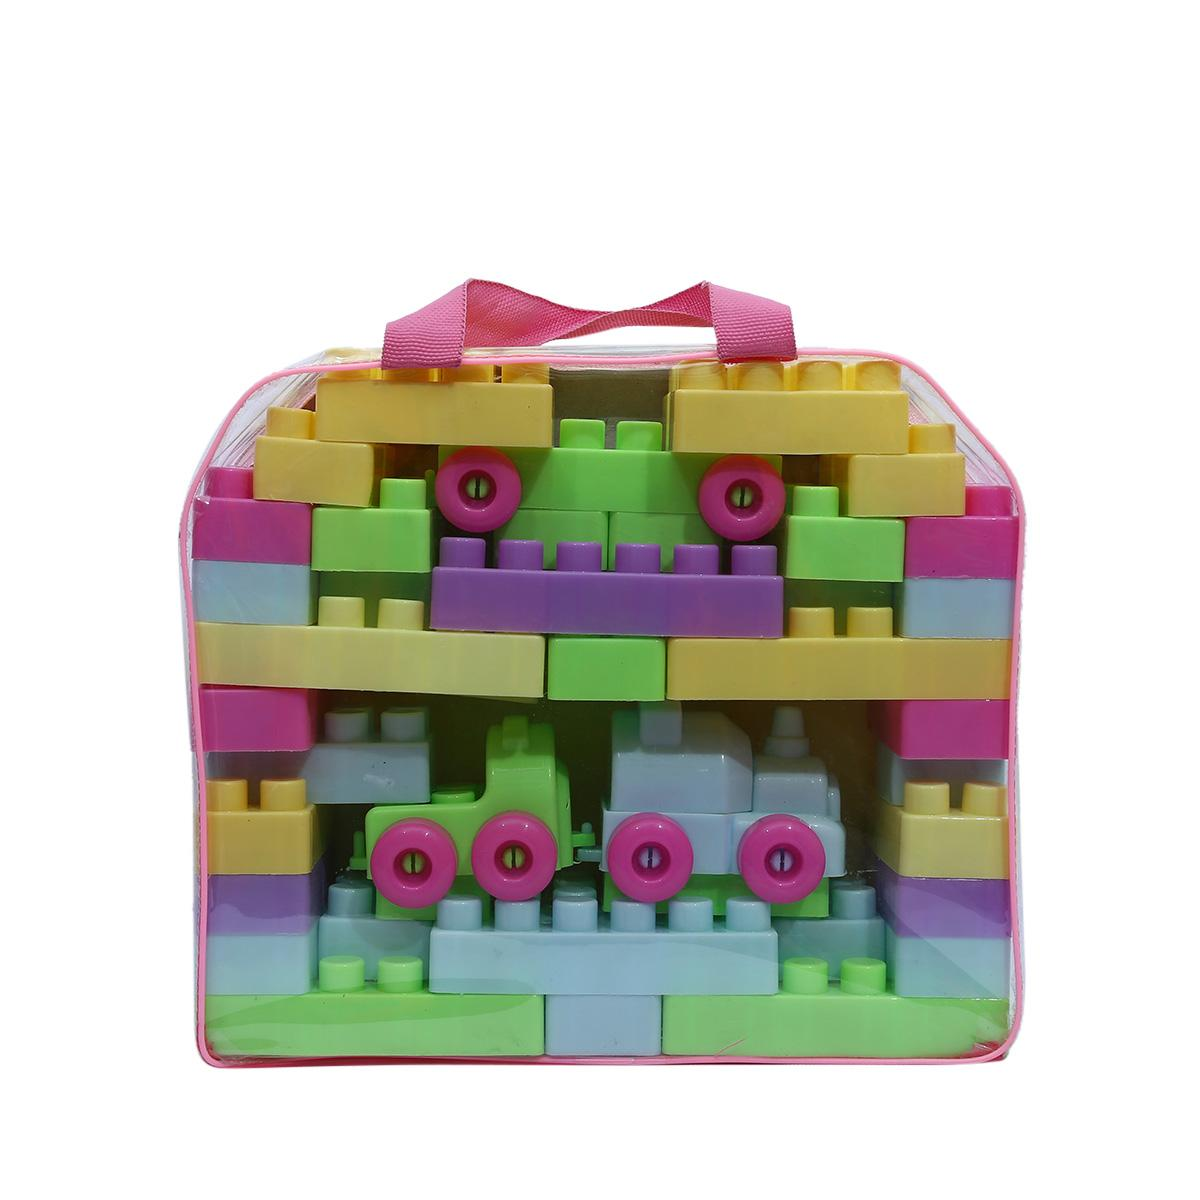 Kids Block Building Toys In Bangladesh At Best Price Minecraft Assembling Toy Plastic Blocks Set For